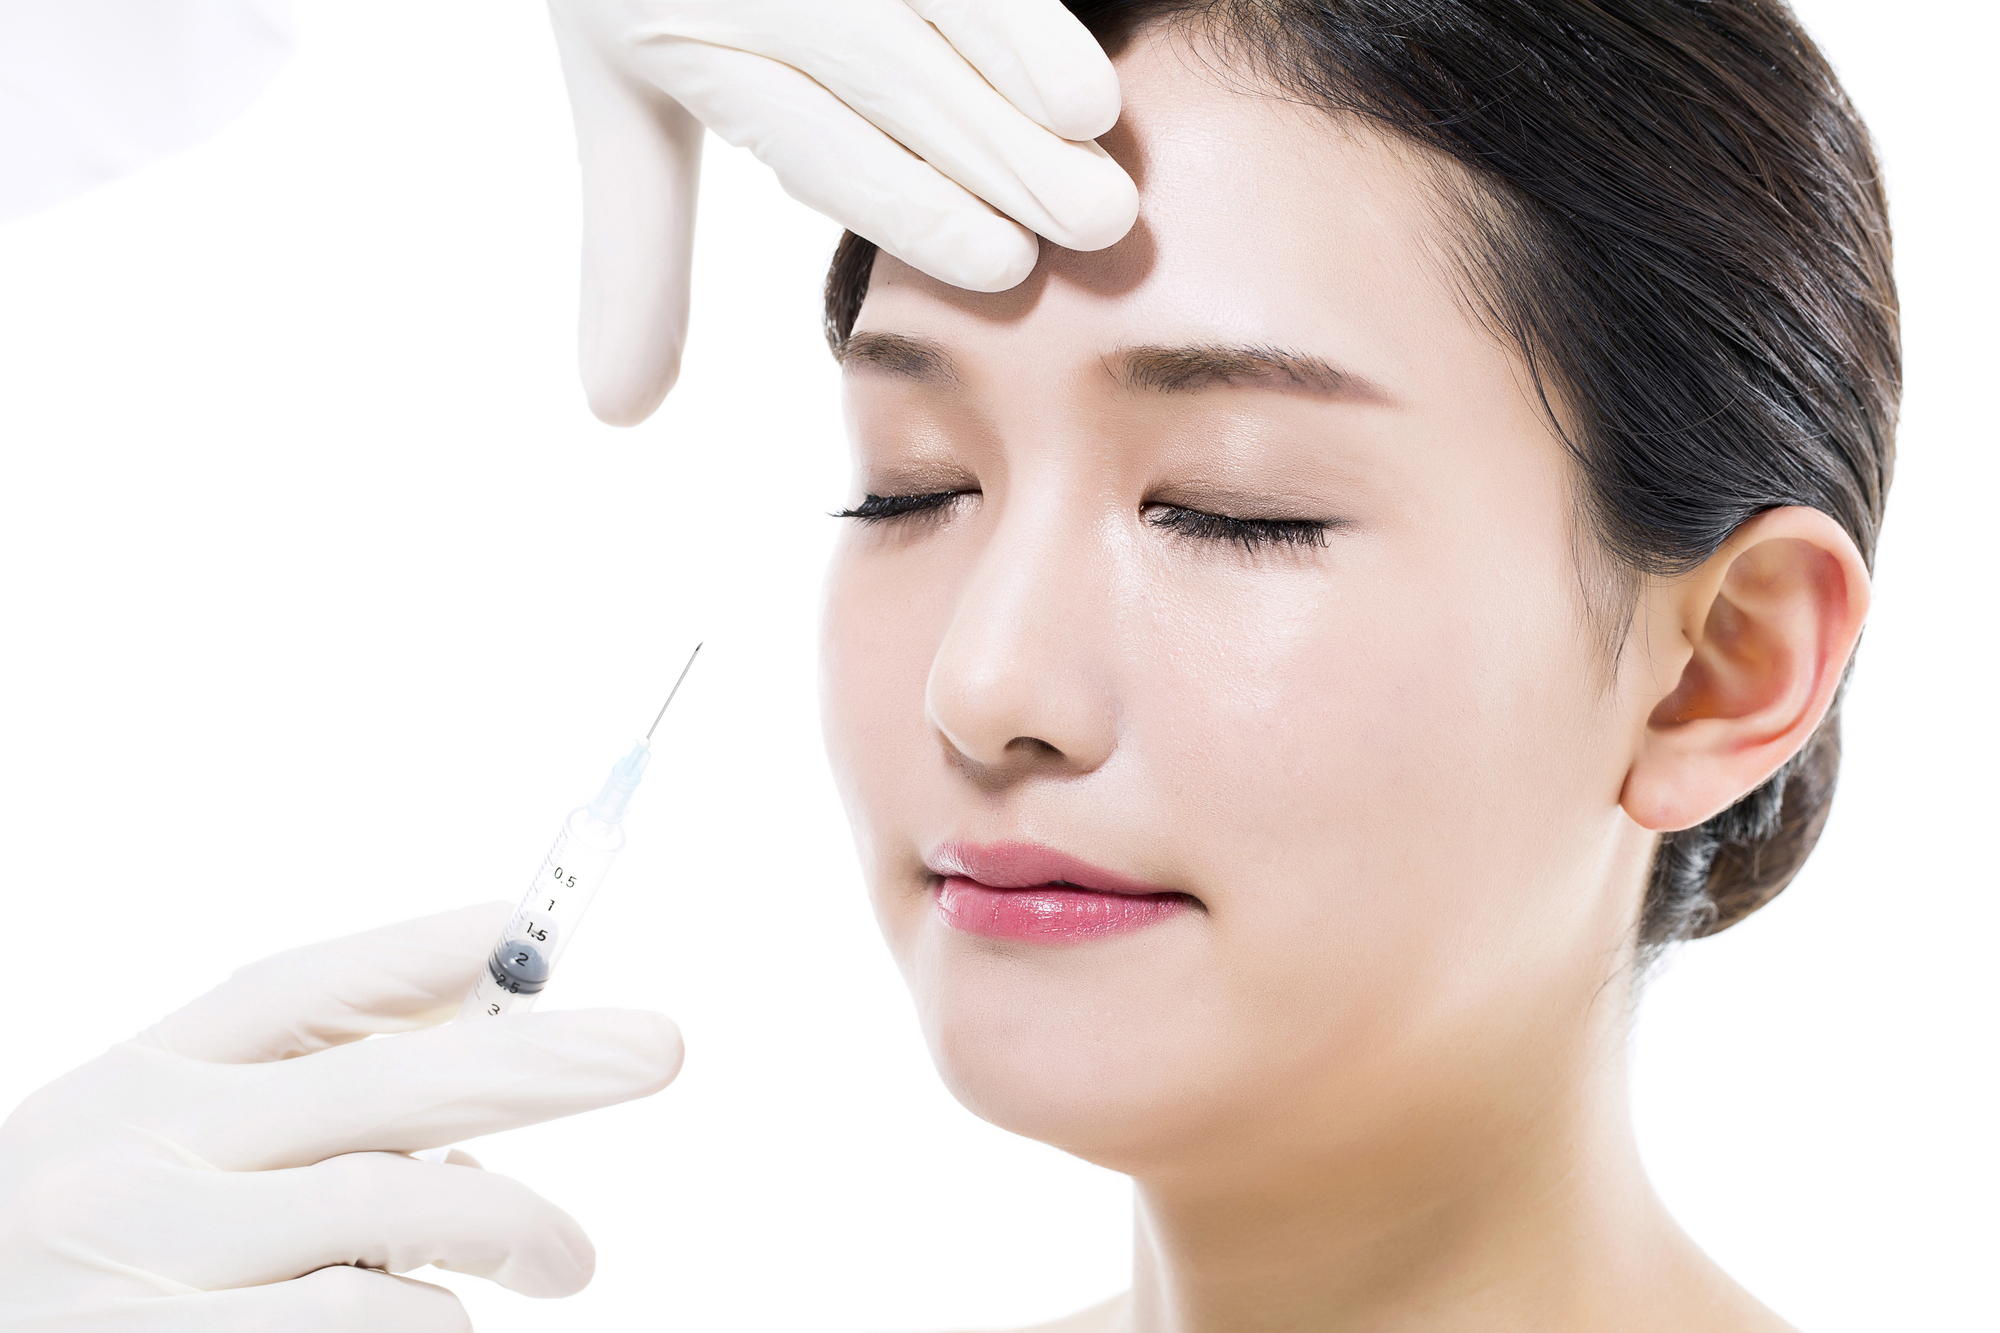 Plastic Surgery/ Cosmetic Injection in the Asian Female Face